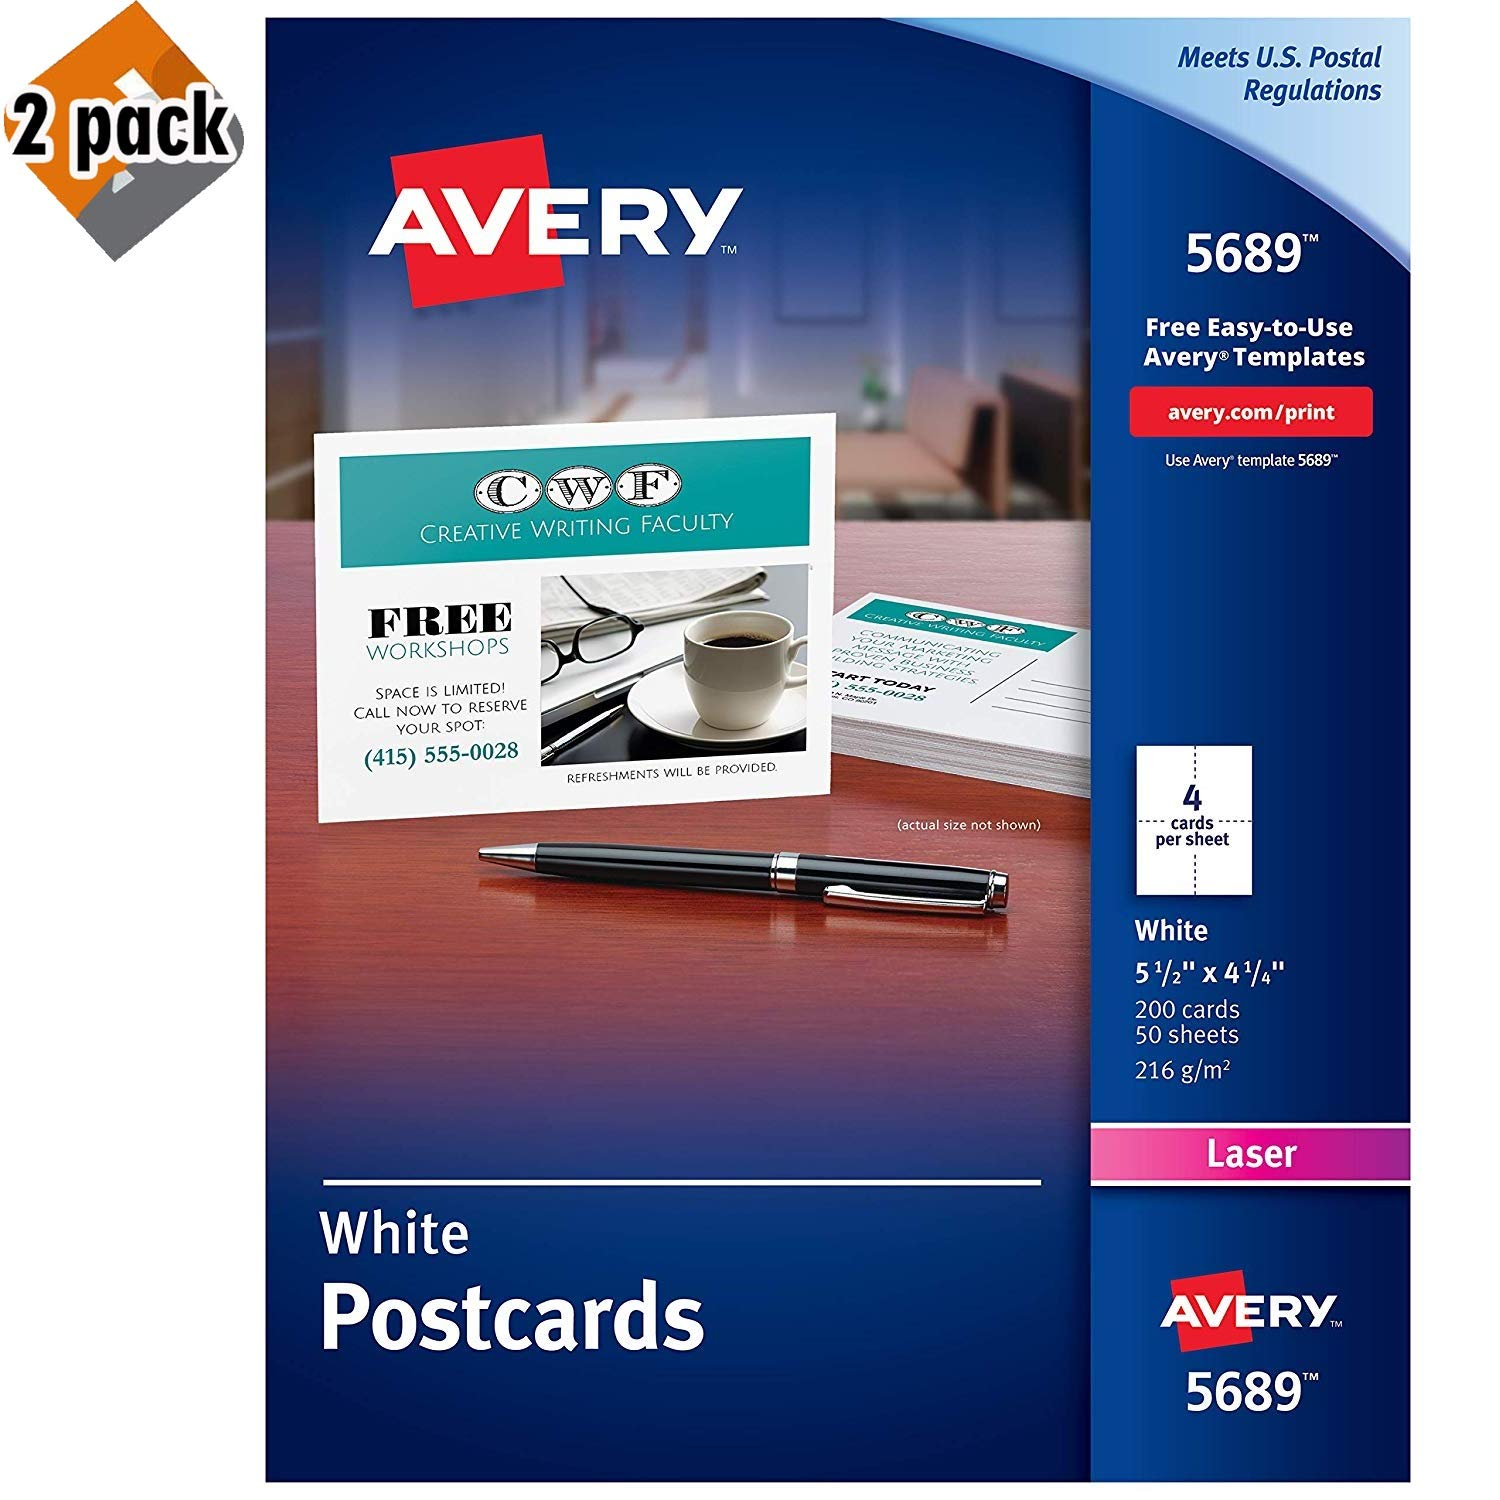 Avery Printable Cards, Laser Printers, 200 Cards, 4.25 x 5.5, U.S. Post Card Size (5689) - 2 Pack by AVERY